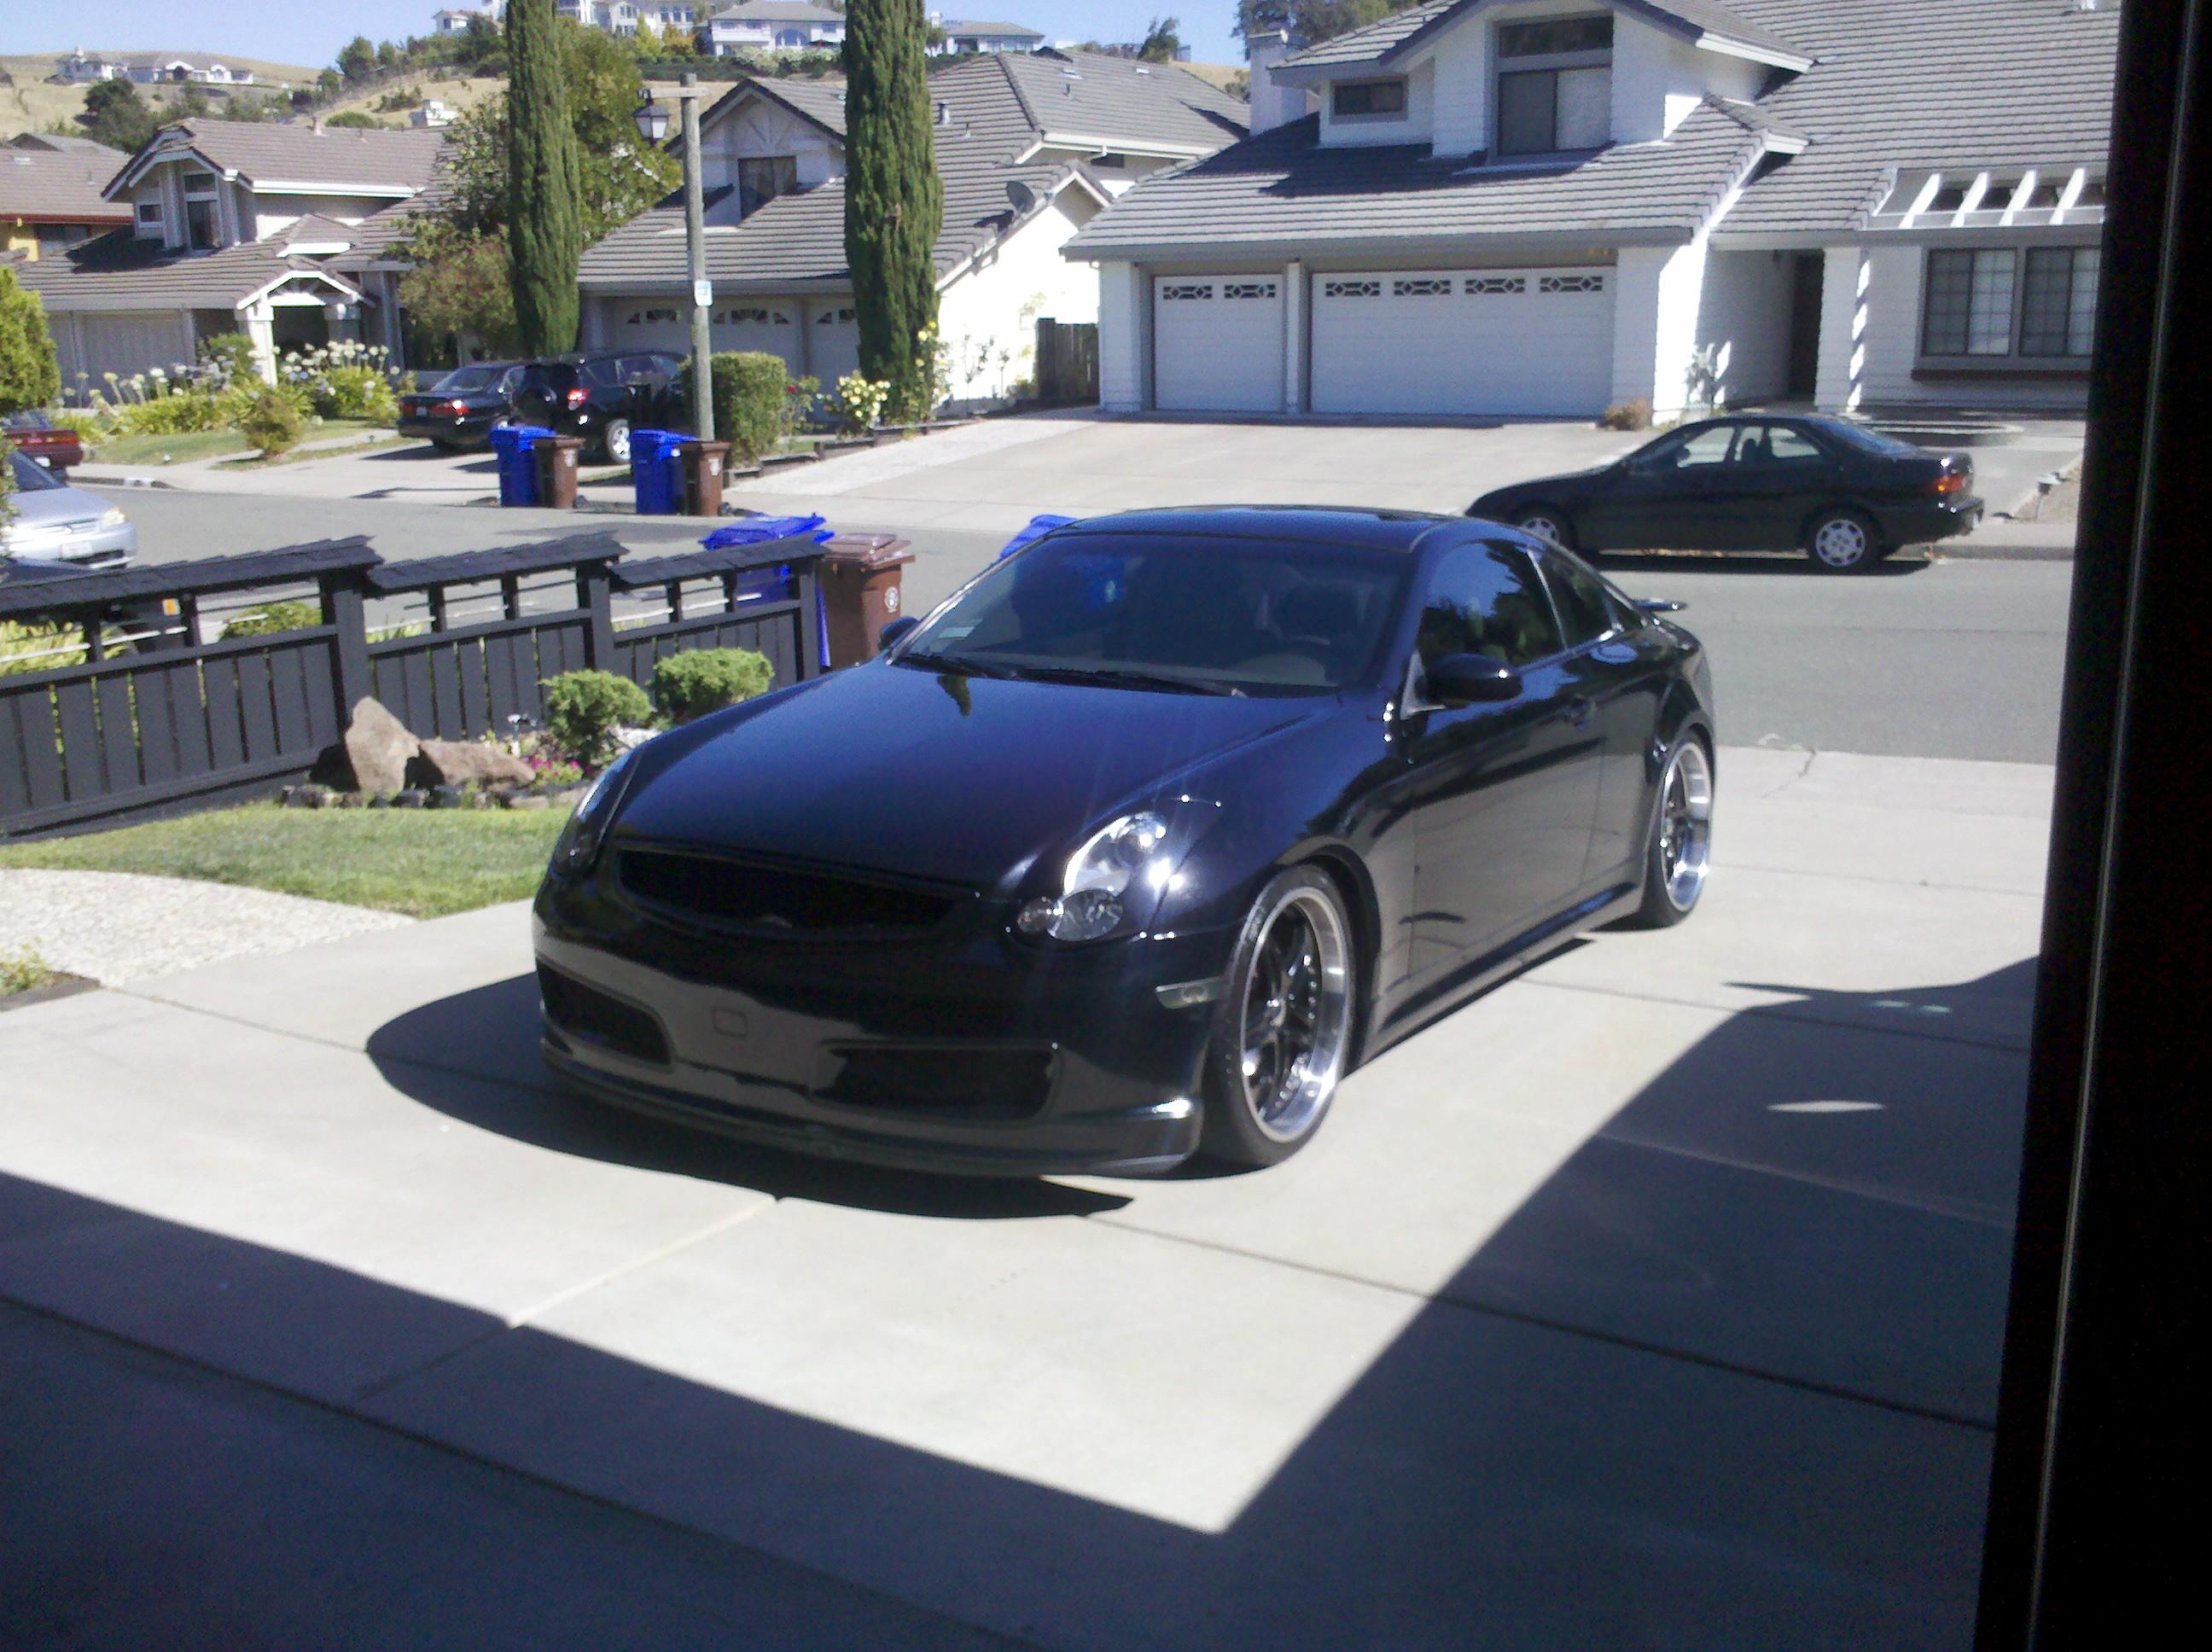 ironman7200 39 s 2006 infiniti g g35 coupe 2d in martinez ca. Black Bedroom Furniture Sets. Home Design Ideas